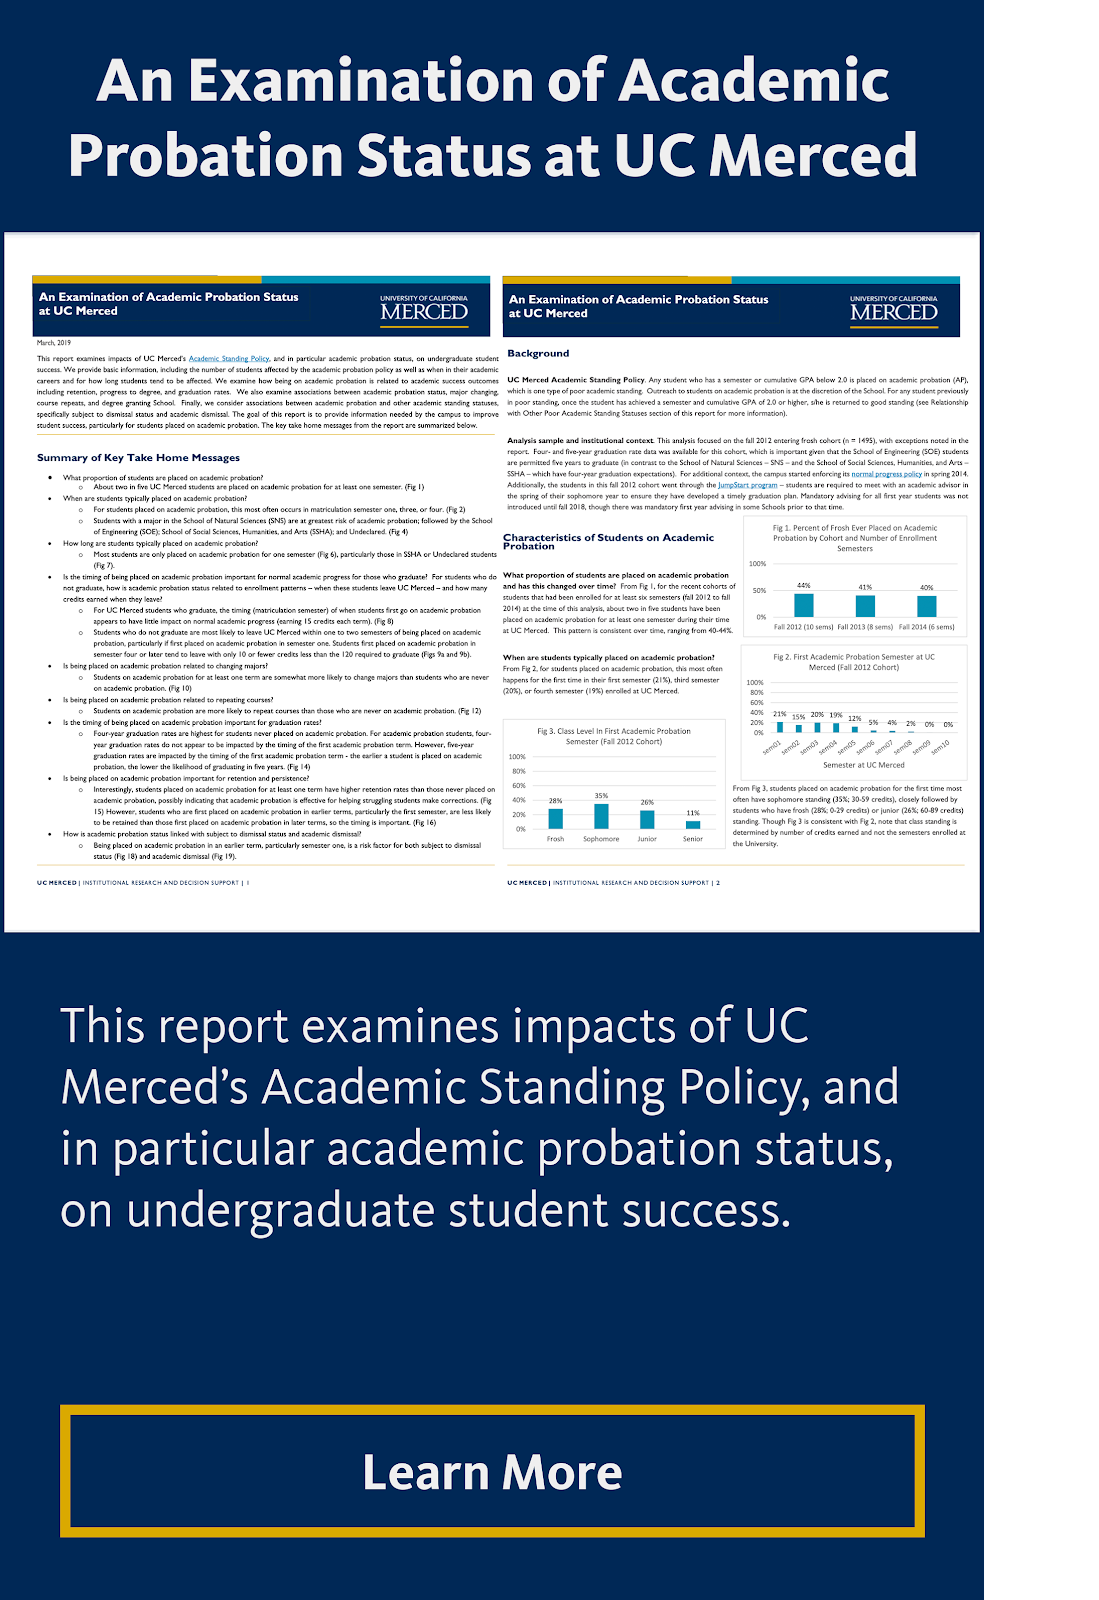 An Examination of Academic Probation Status at UC Merced